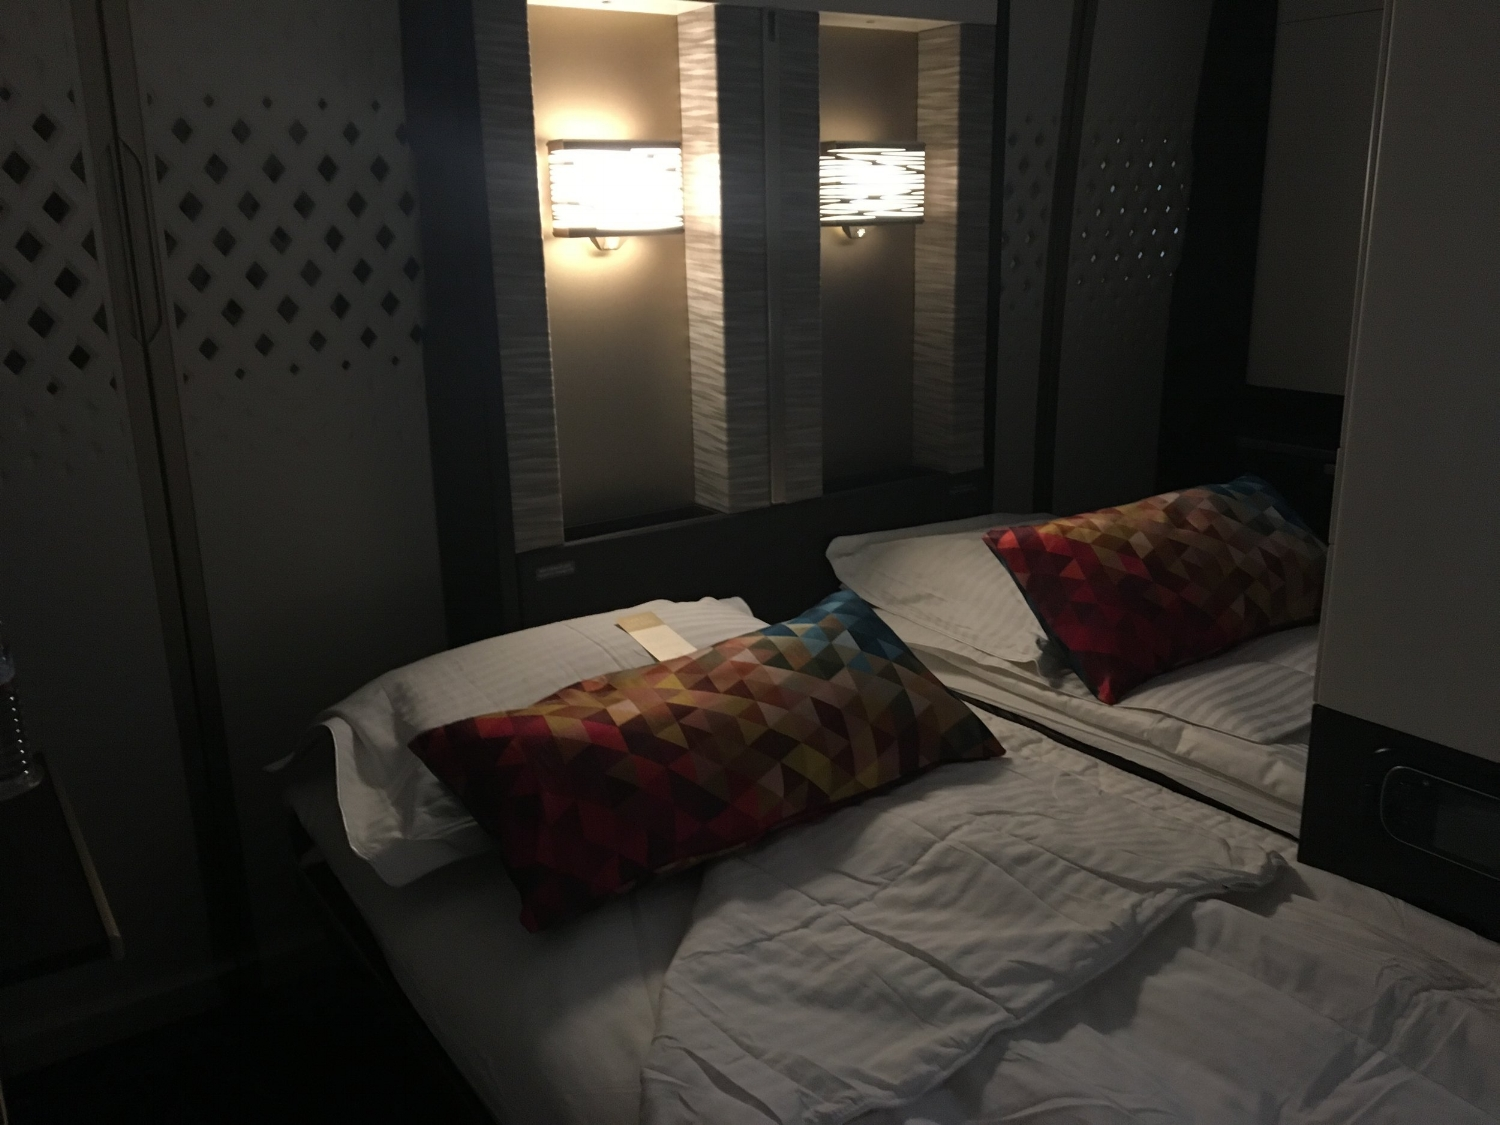 REDEEM AADVATANGE MILES FOR A TICKET IN ETIHAD FIRST CLASS